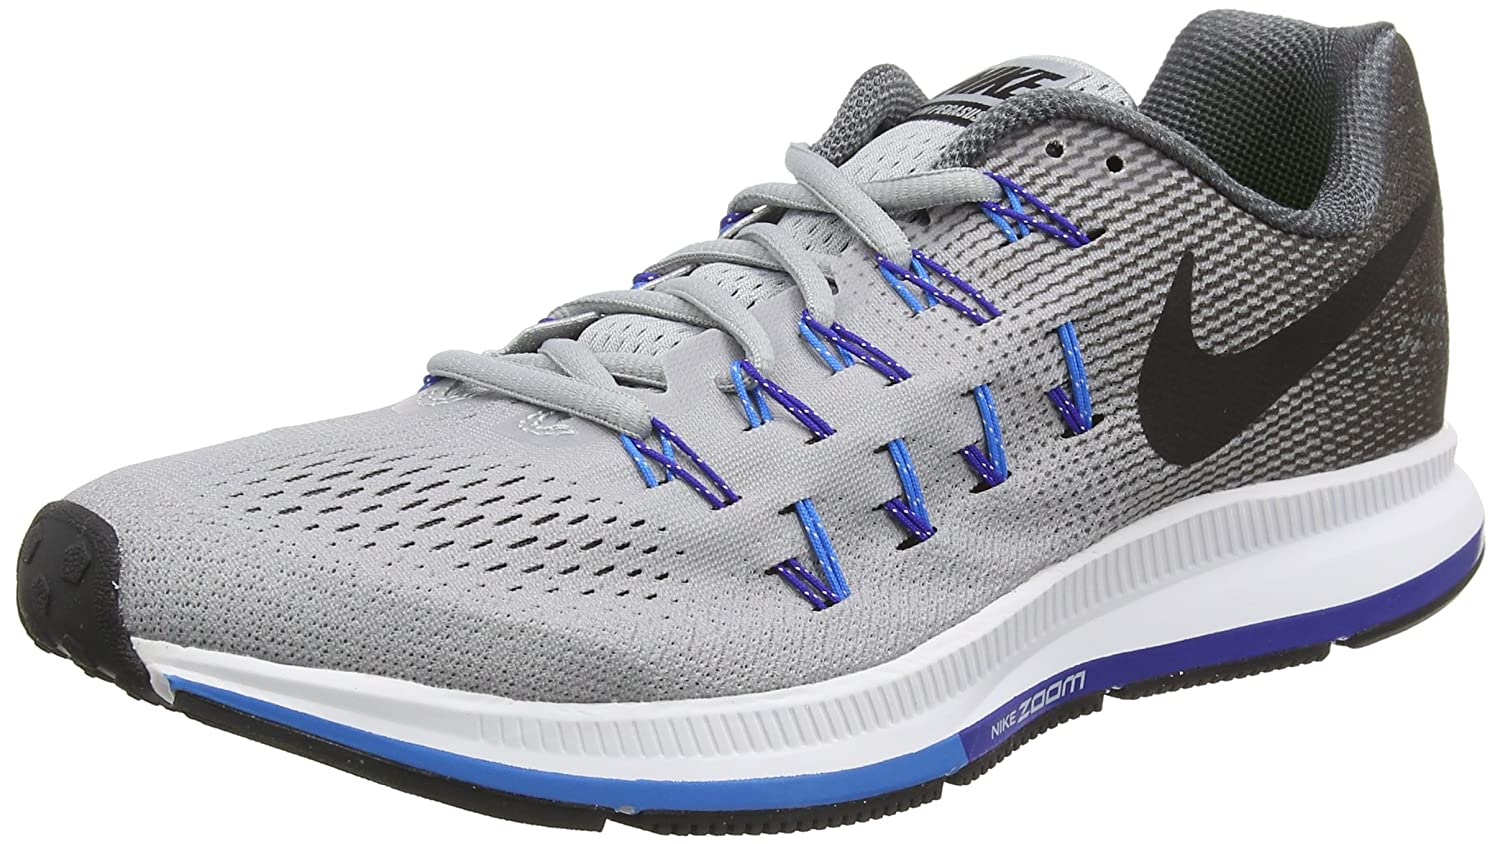 4670ff1cc8a96 Nike Men s Air Zoom Pegasus 33 Running Shoes  Amazon.co.uk  Shoes   Bags